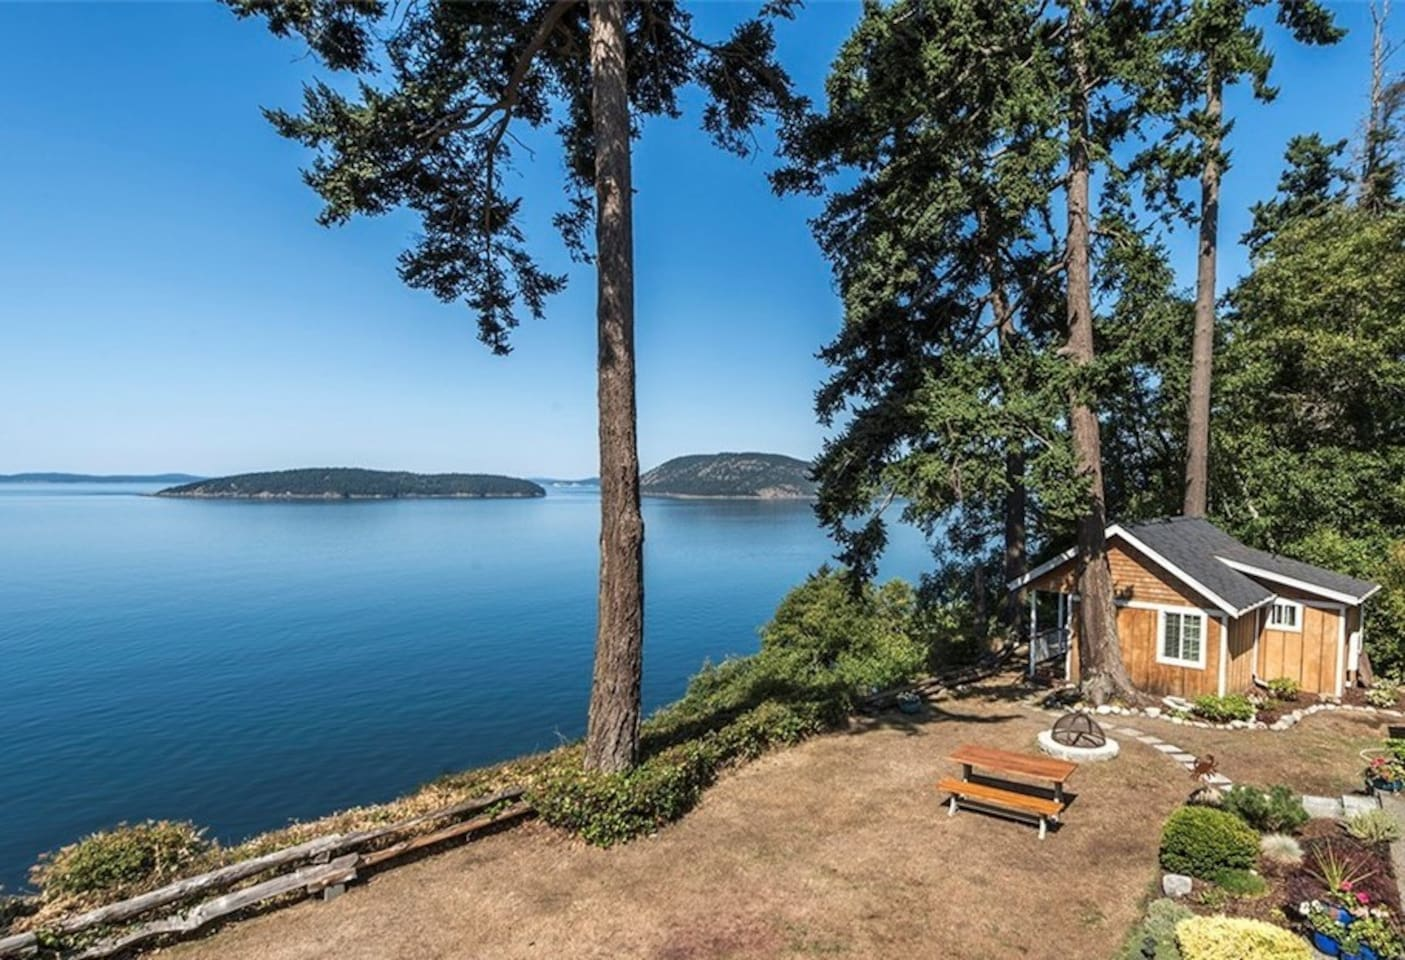 Overview of cabin and Salish Sea